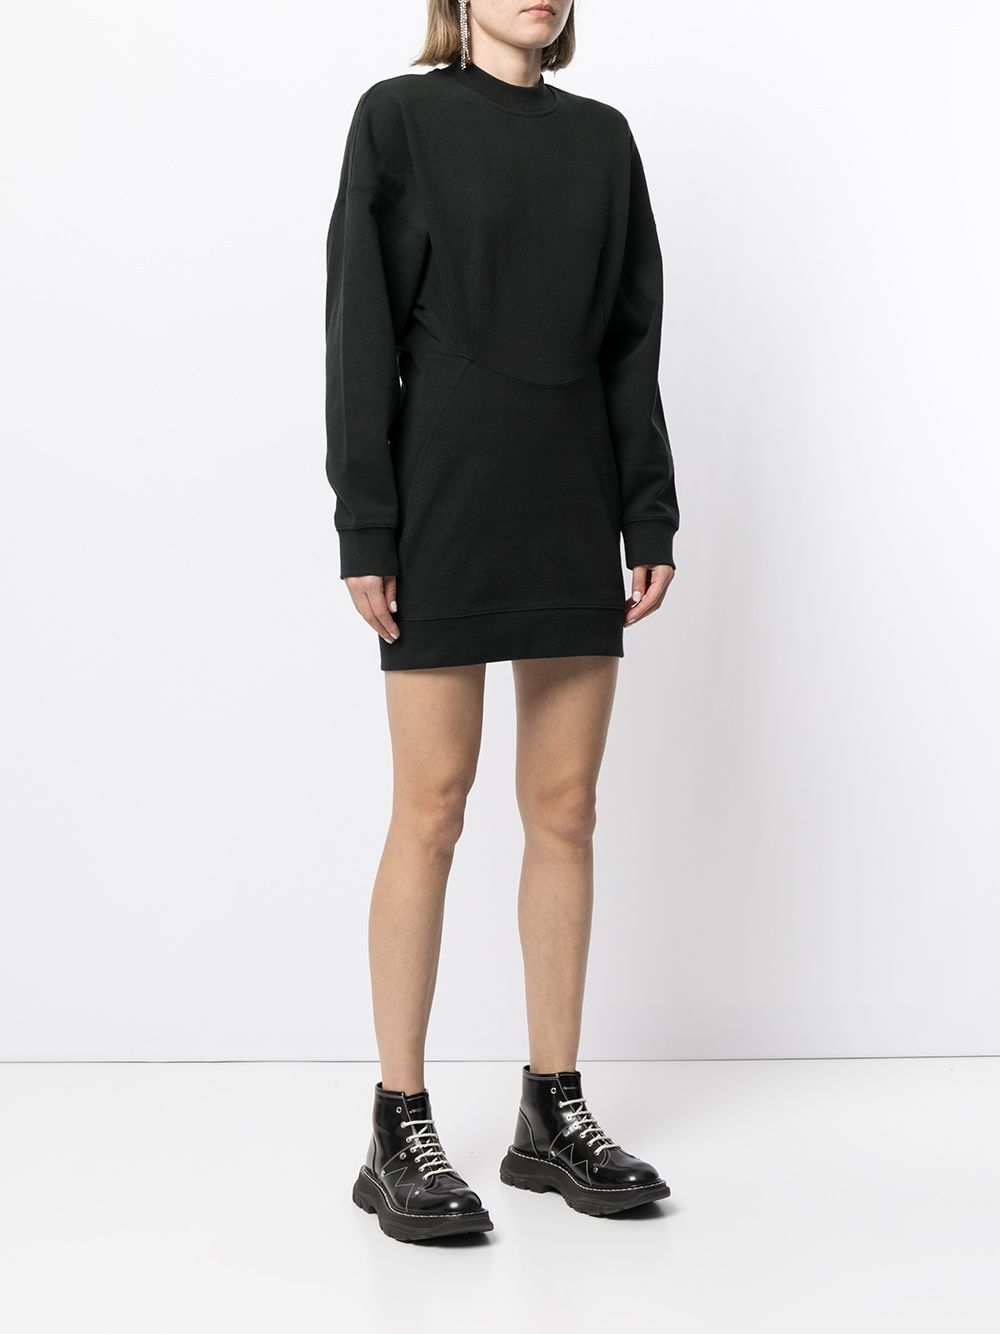 T BY ALEXANDER WANG WOMEN SCULPTED CREWECK MINI DRESS